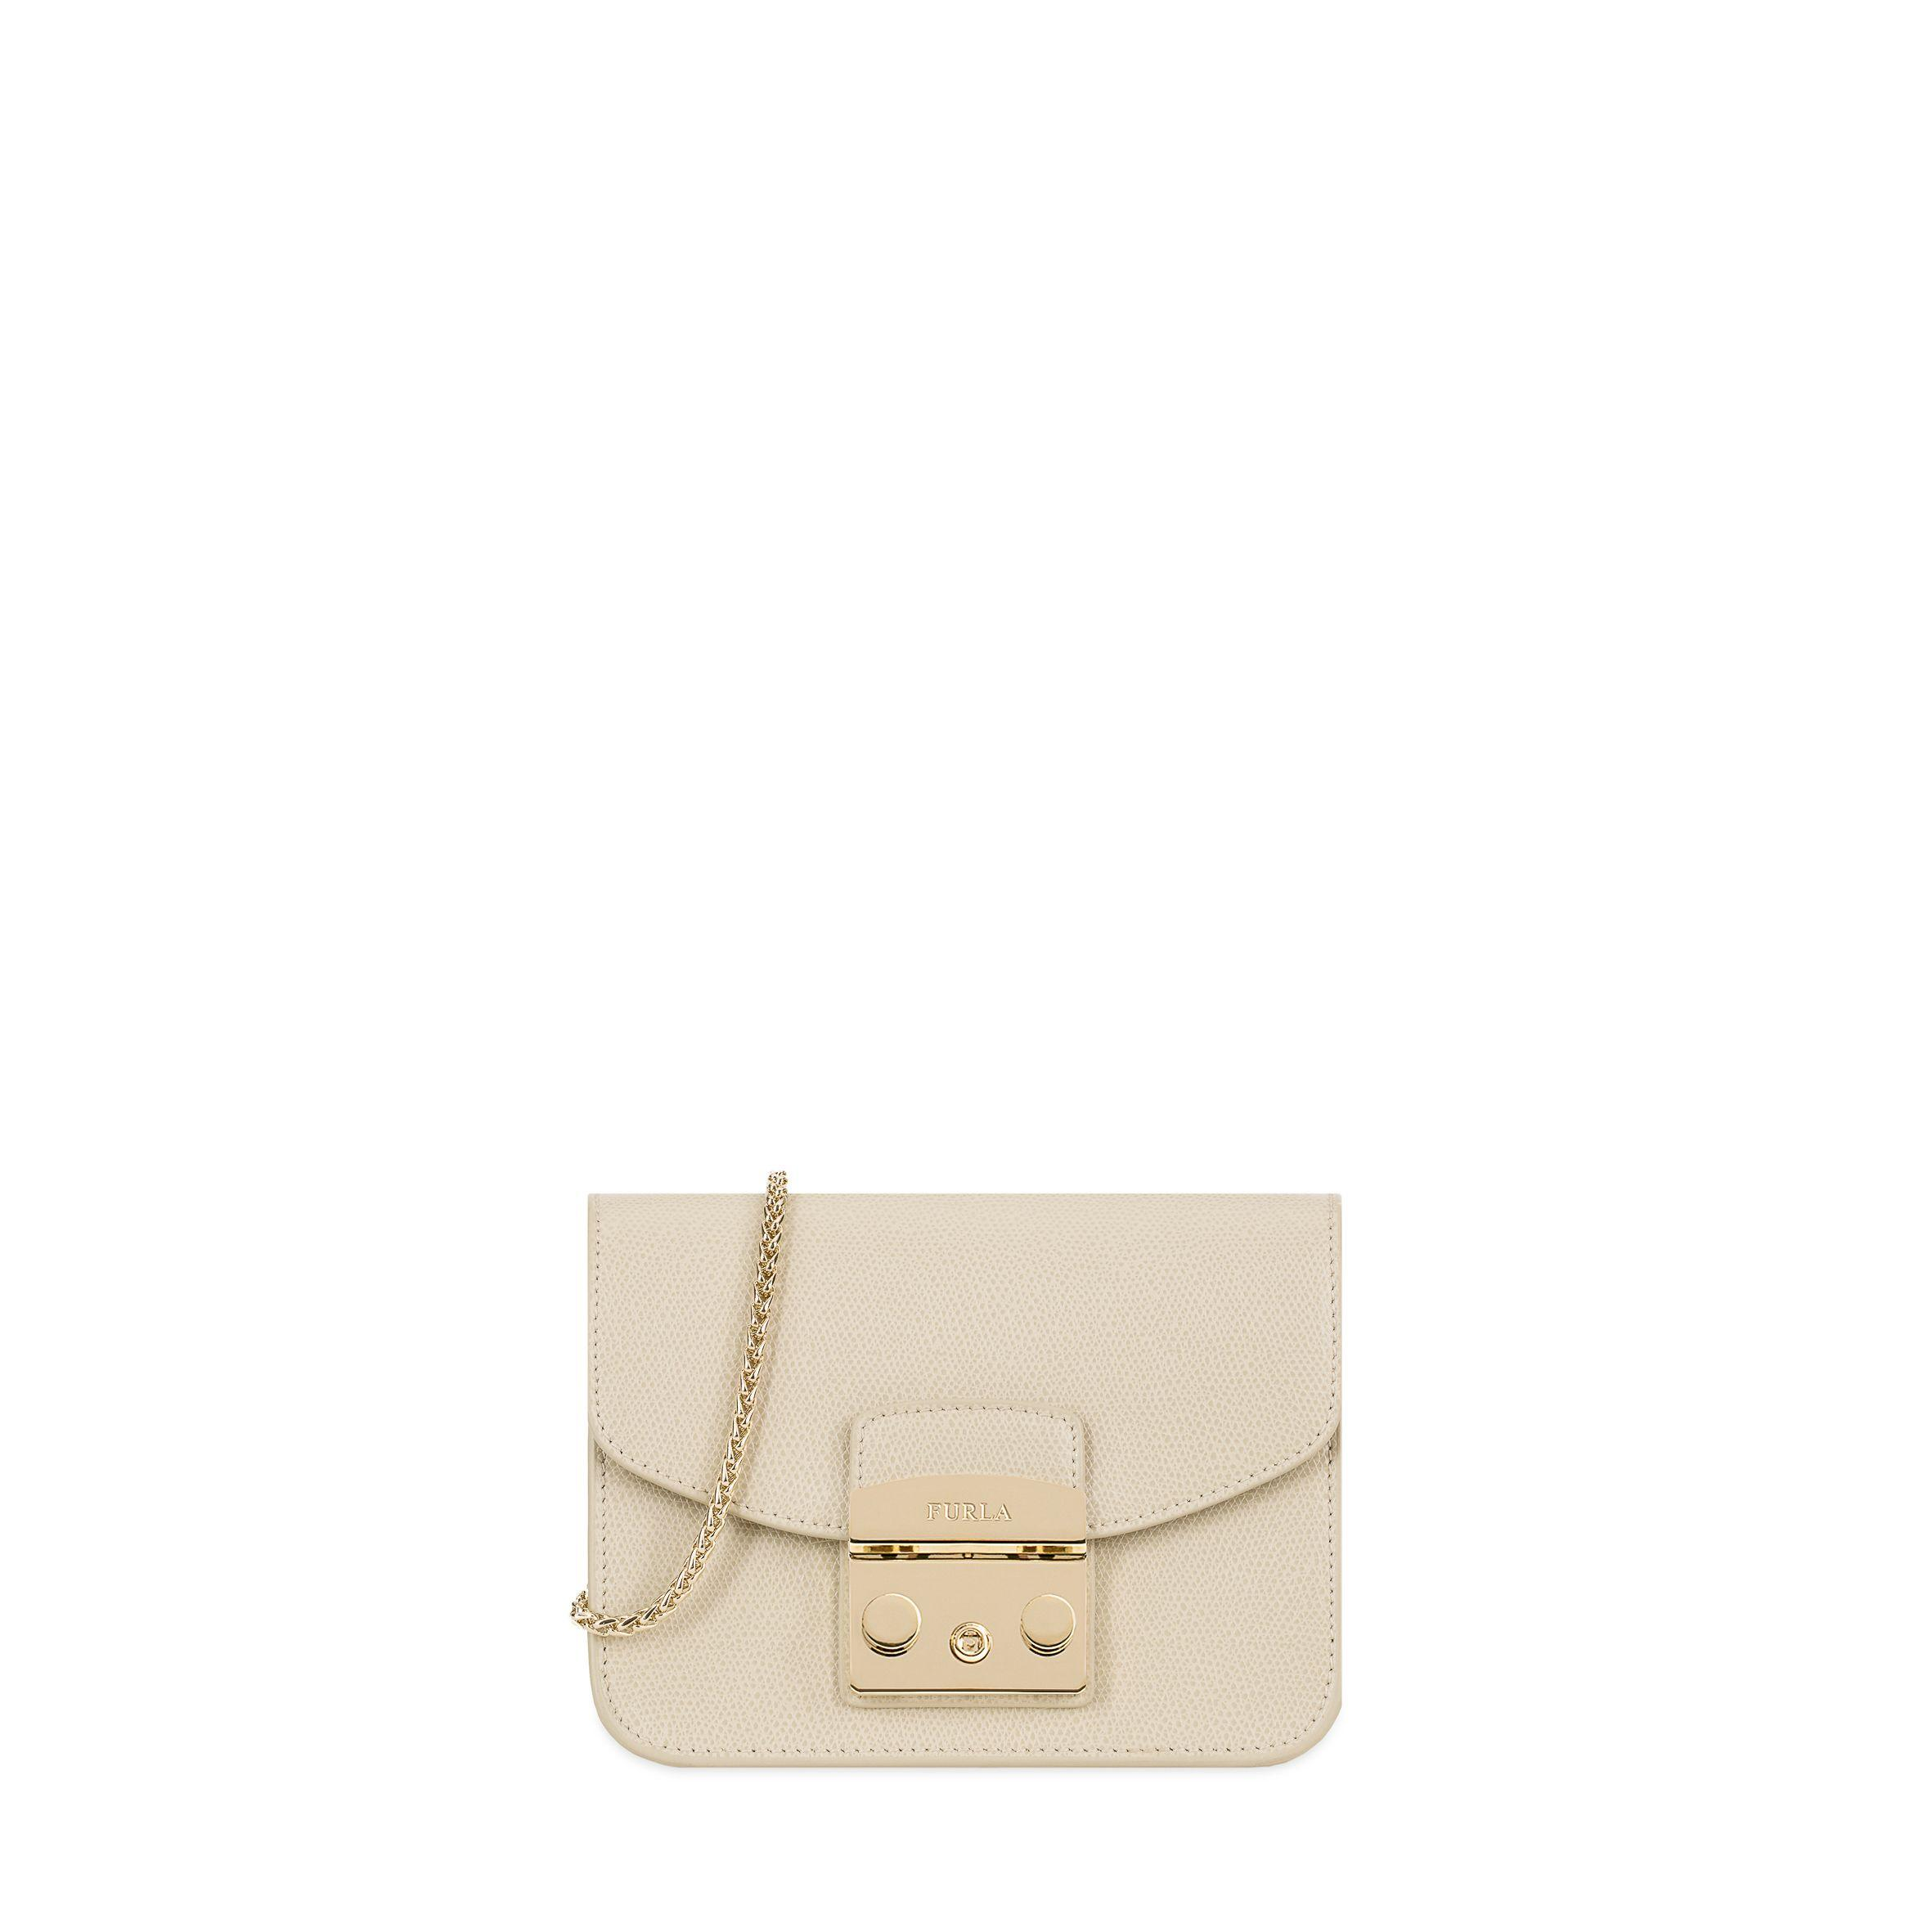 Furla Metropolis Leather Mini Bag In Creta